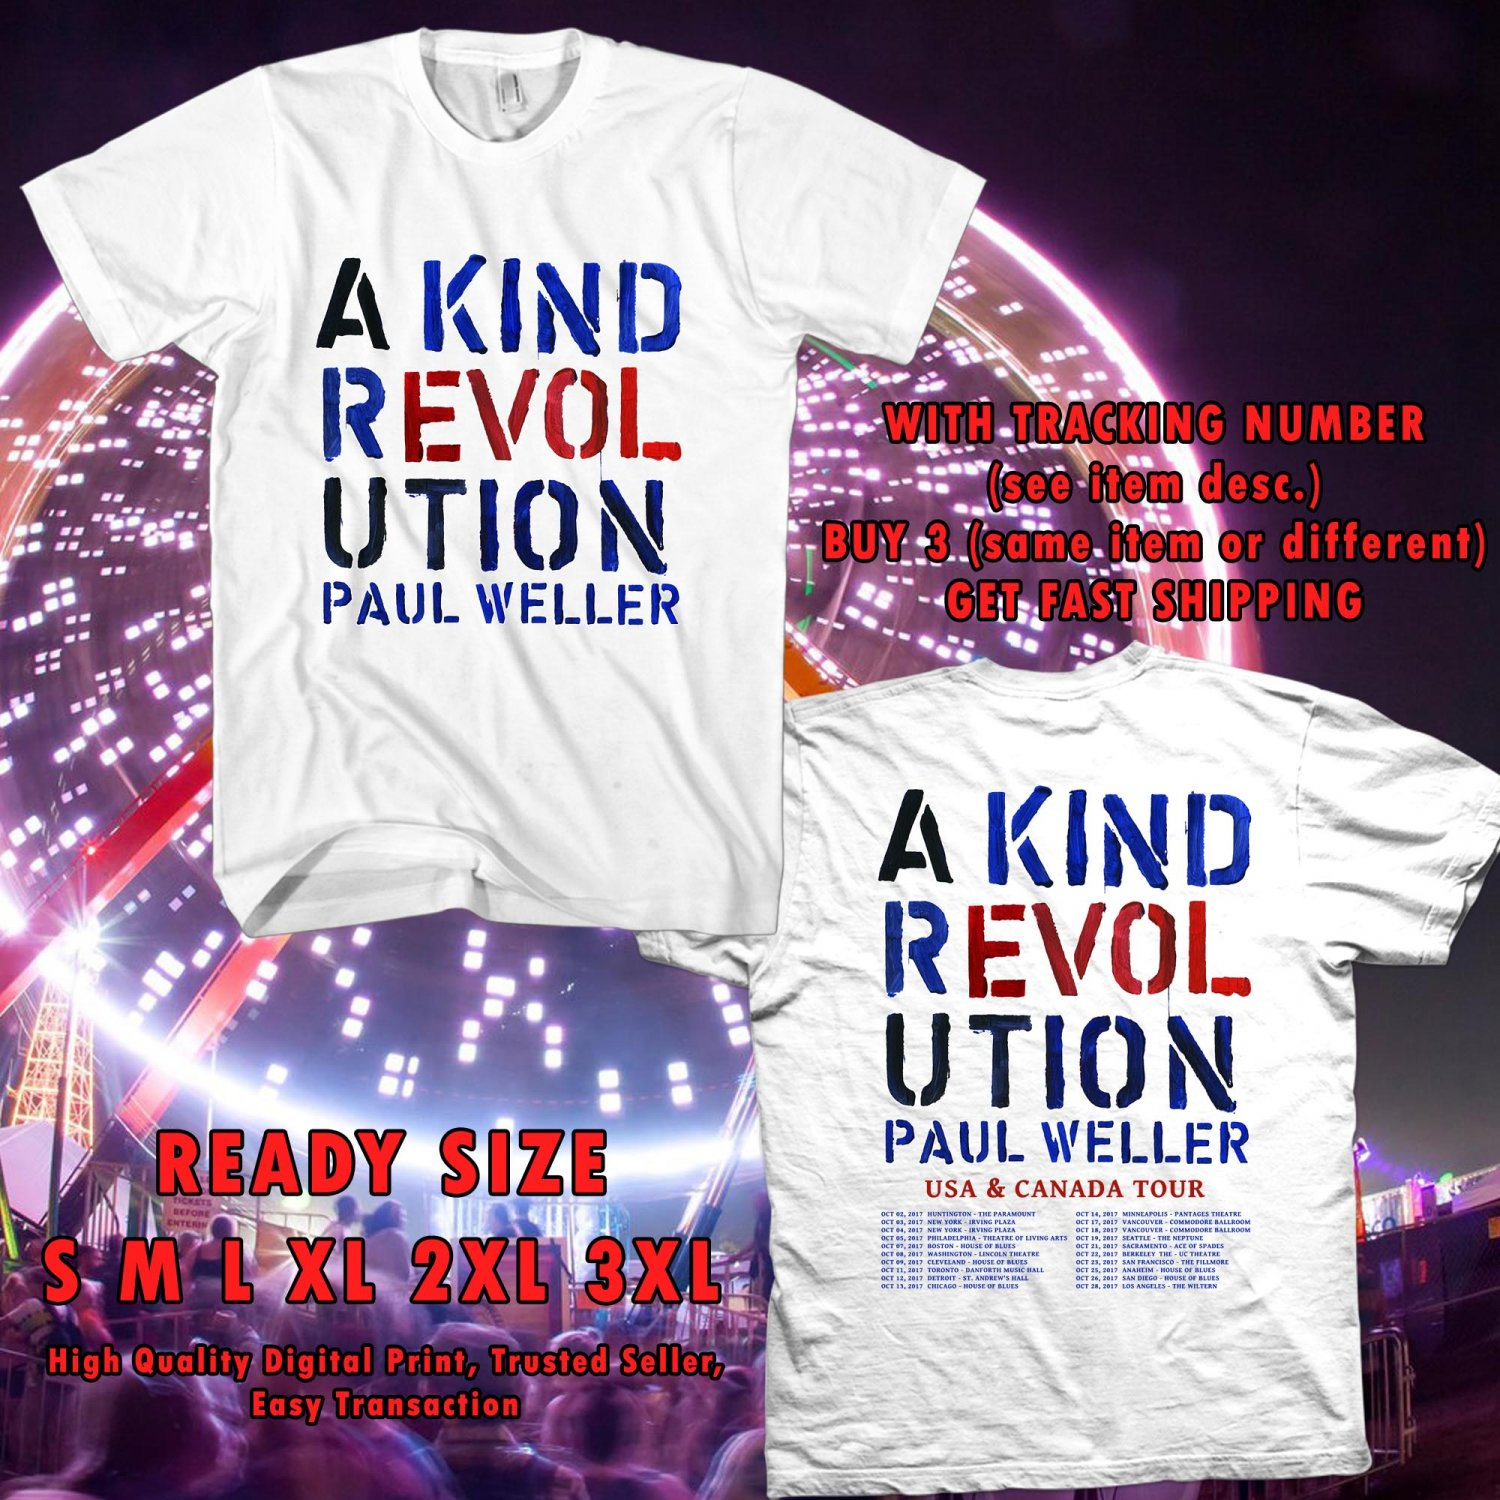 HITS PAUL WELLER A KIND REVOLUTION N.AMERICA TOUR 2017 WHITE TEE'S 2SIDE MAN WOMEN ASTR